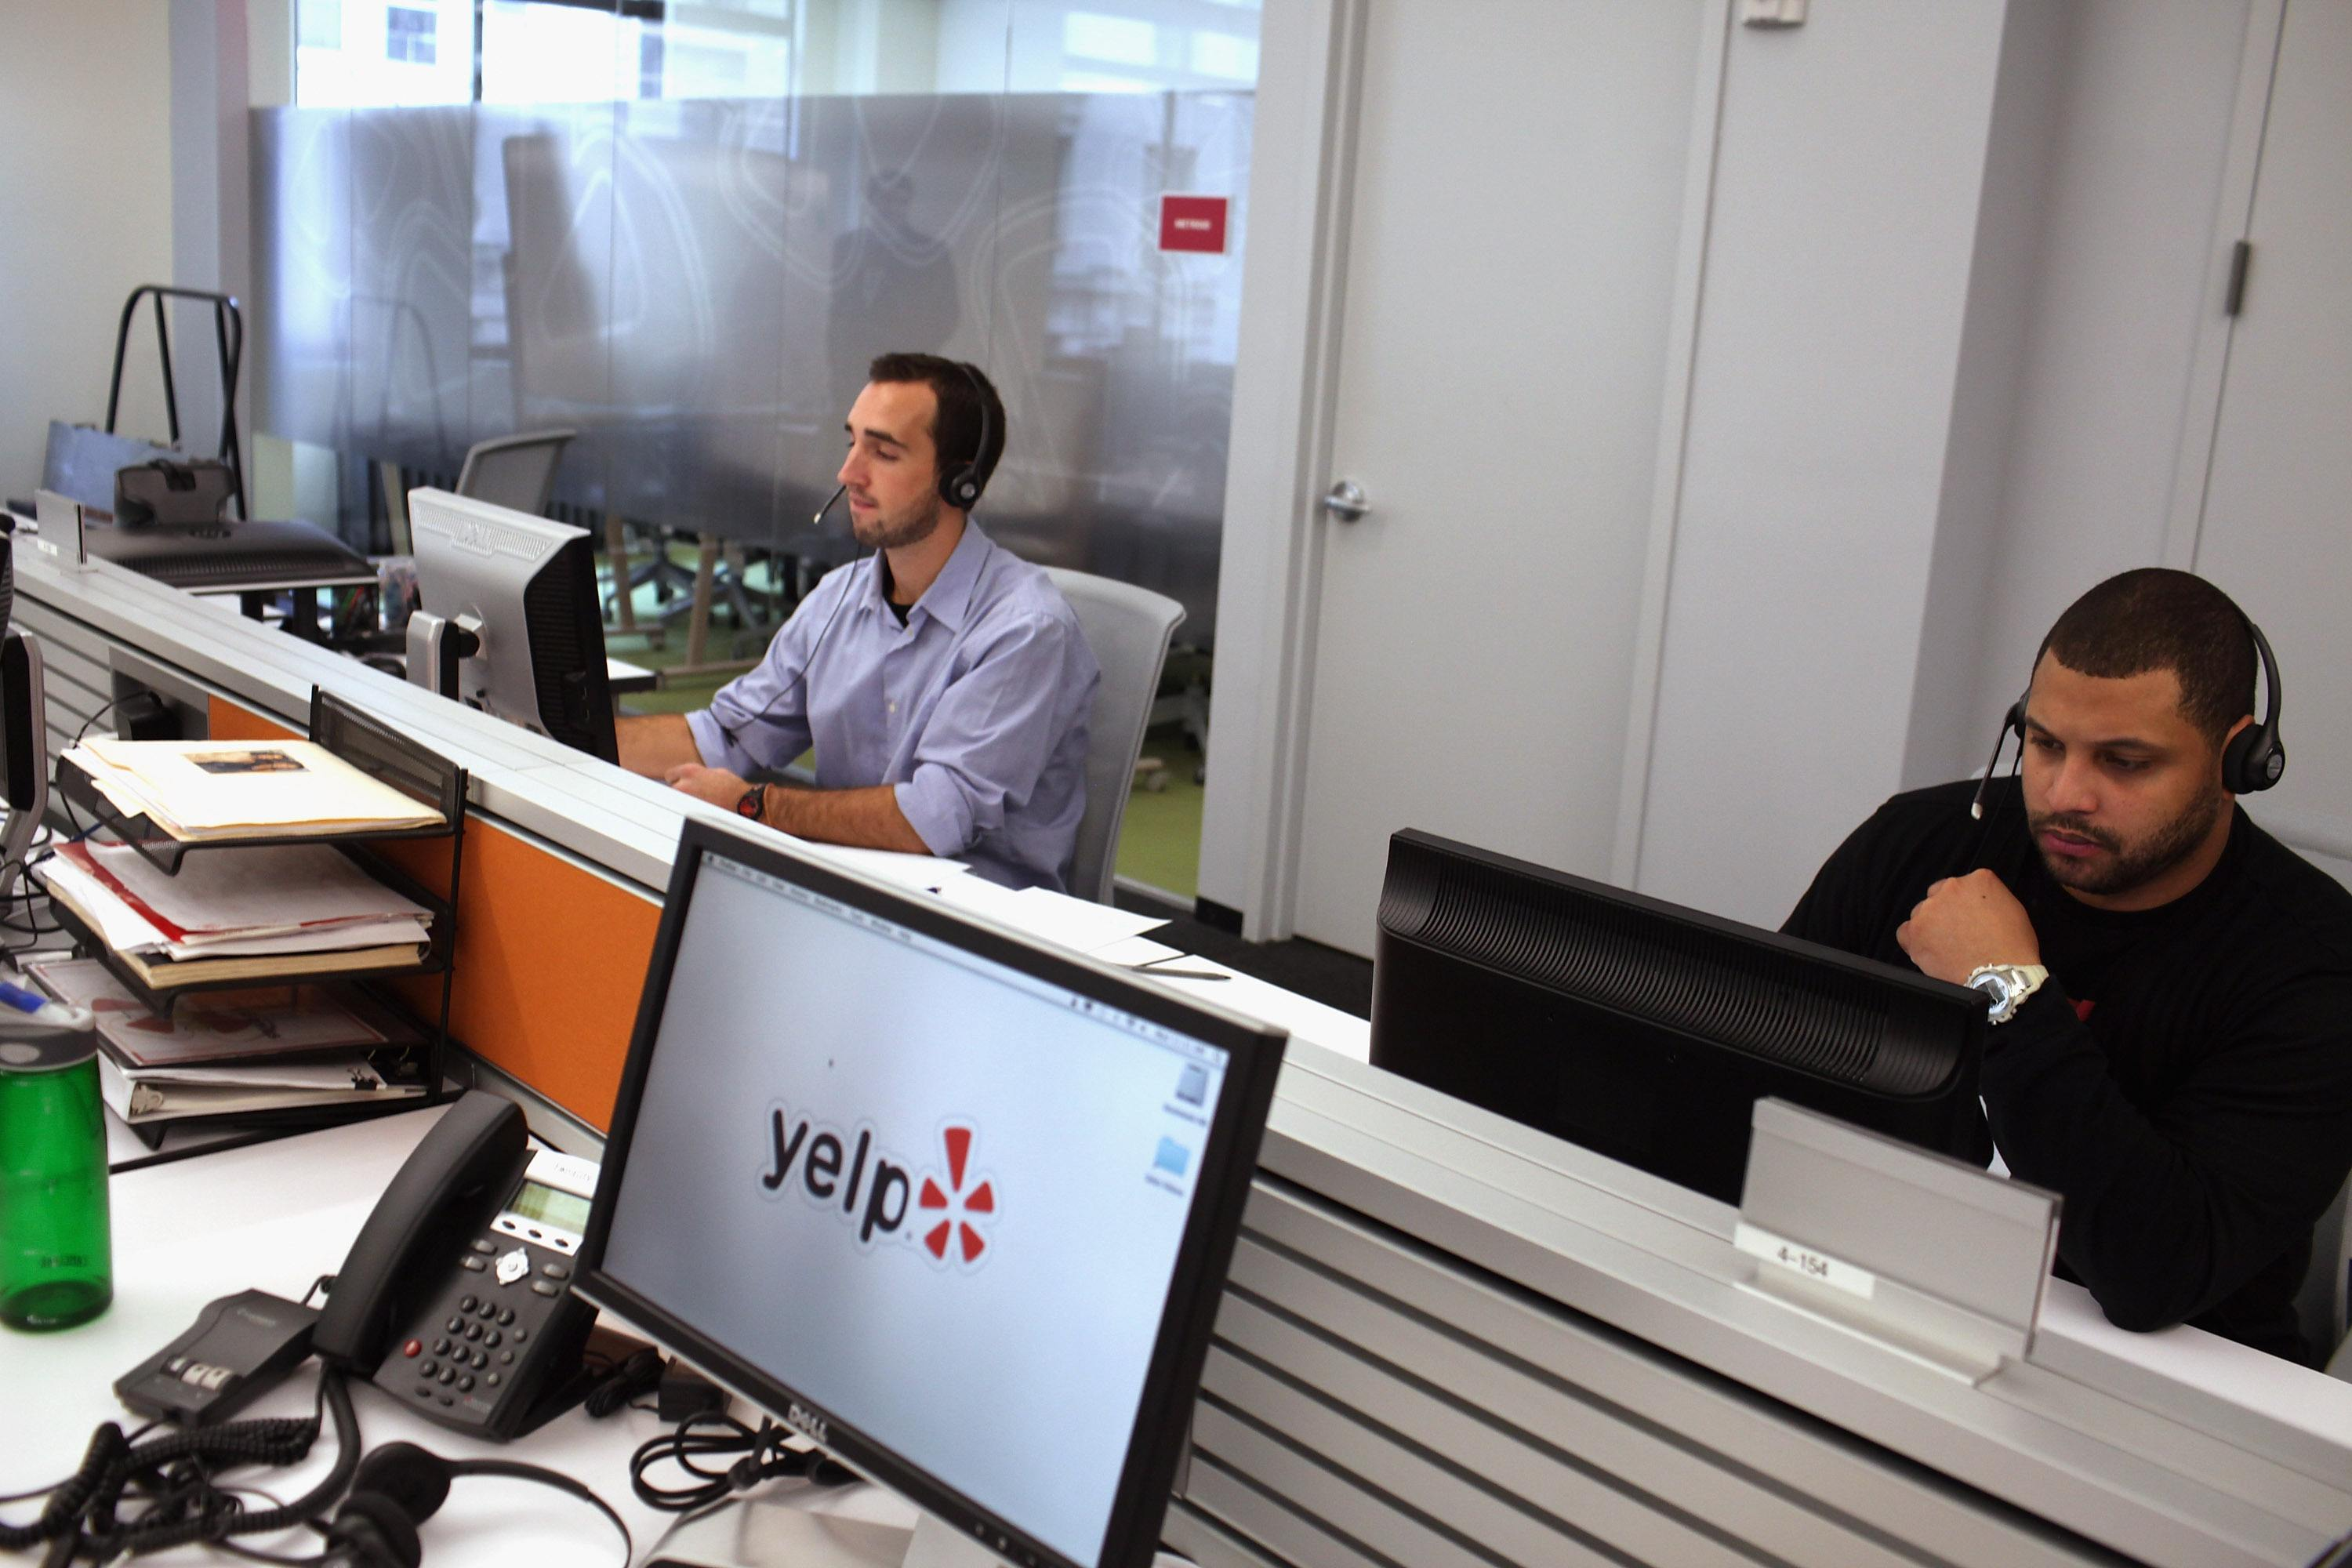 Employees of the online review site Yelp